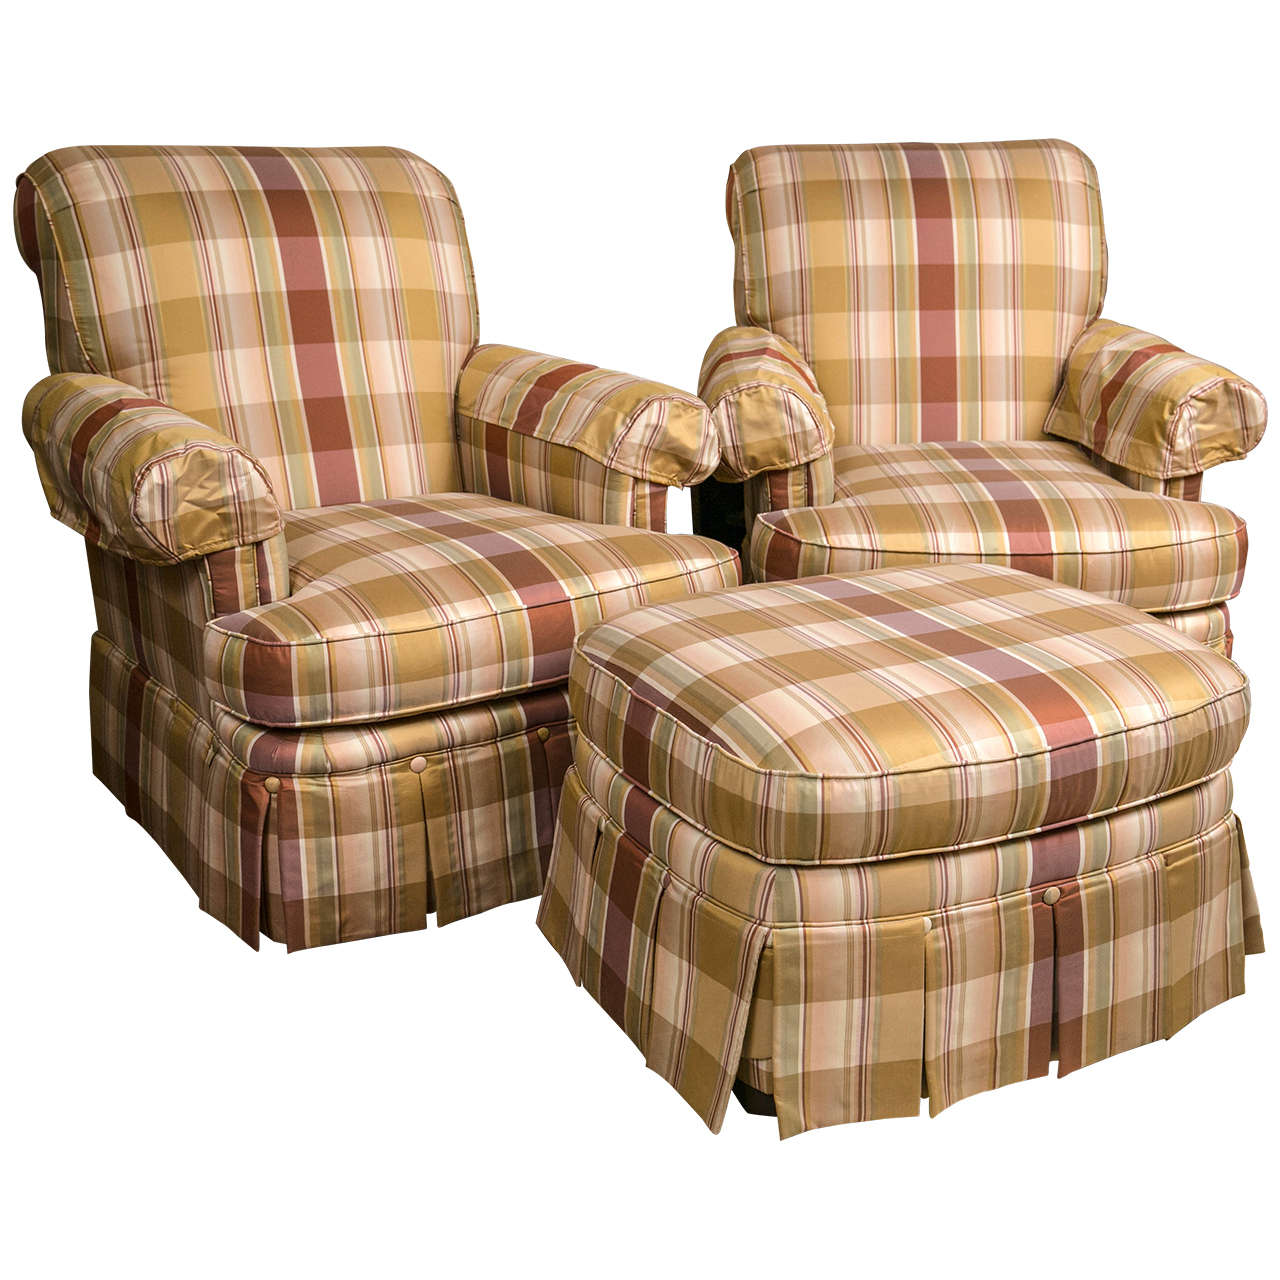 chairs and ottomans upholstered high stool chair ikea pair of custom quality silk plaid club